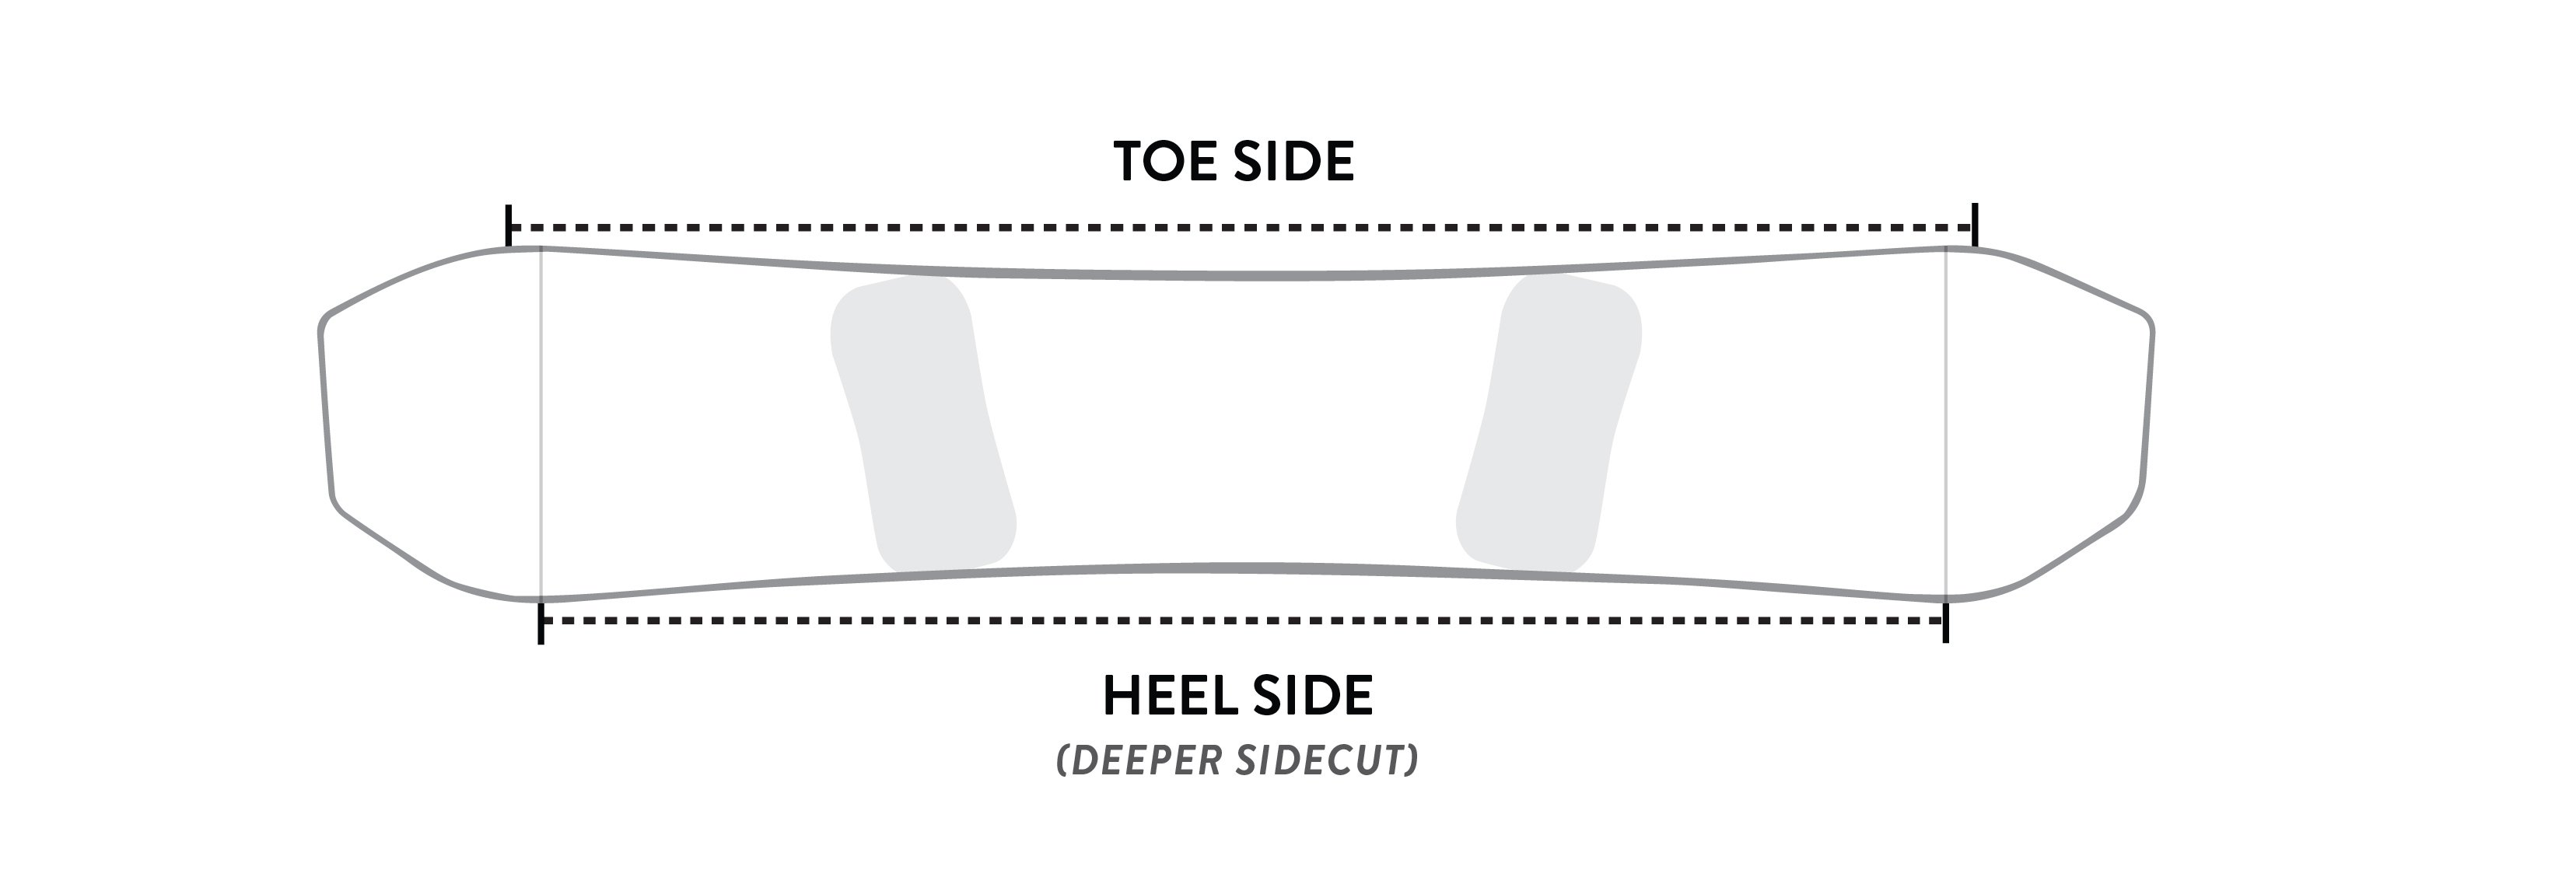 asymmetrical snowboard shape guide evo